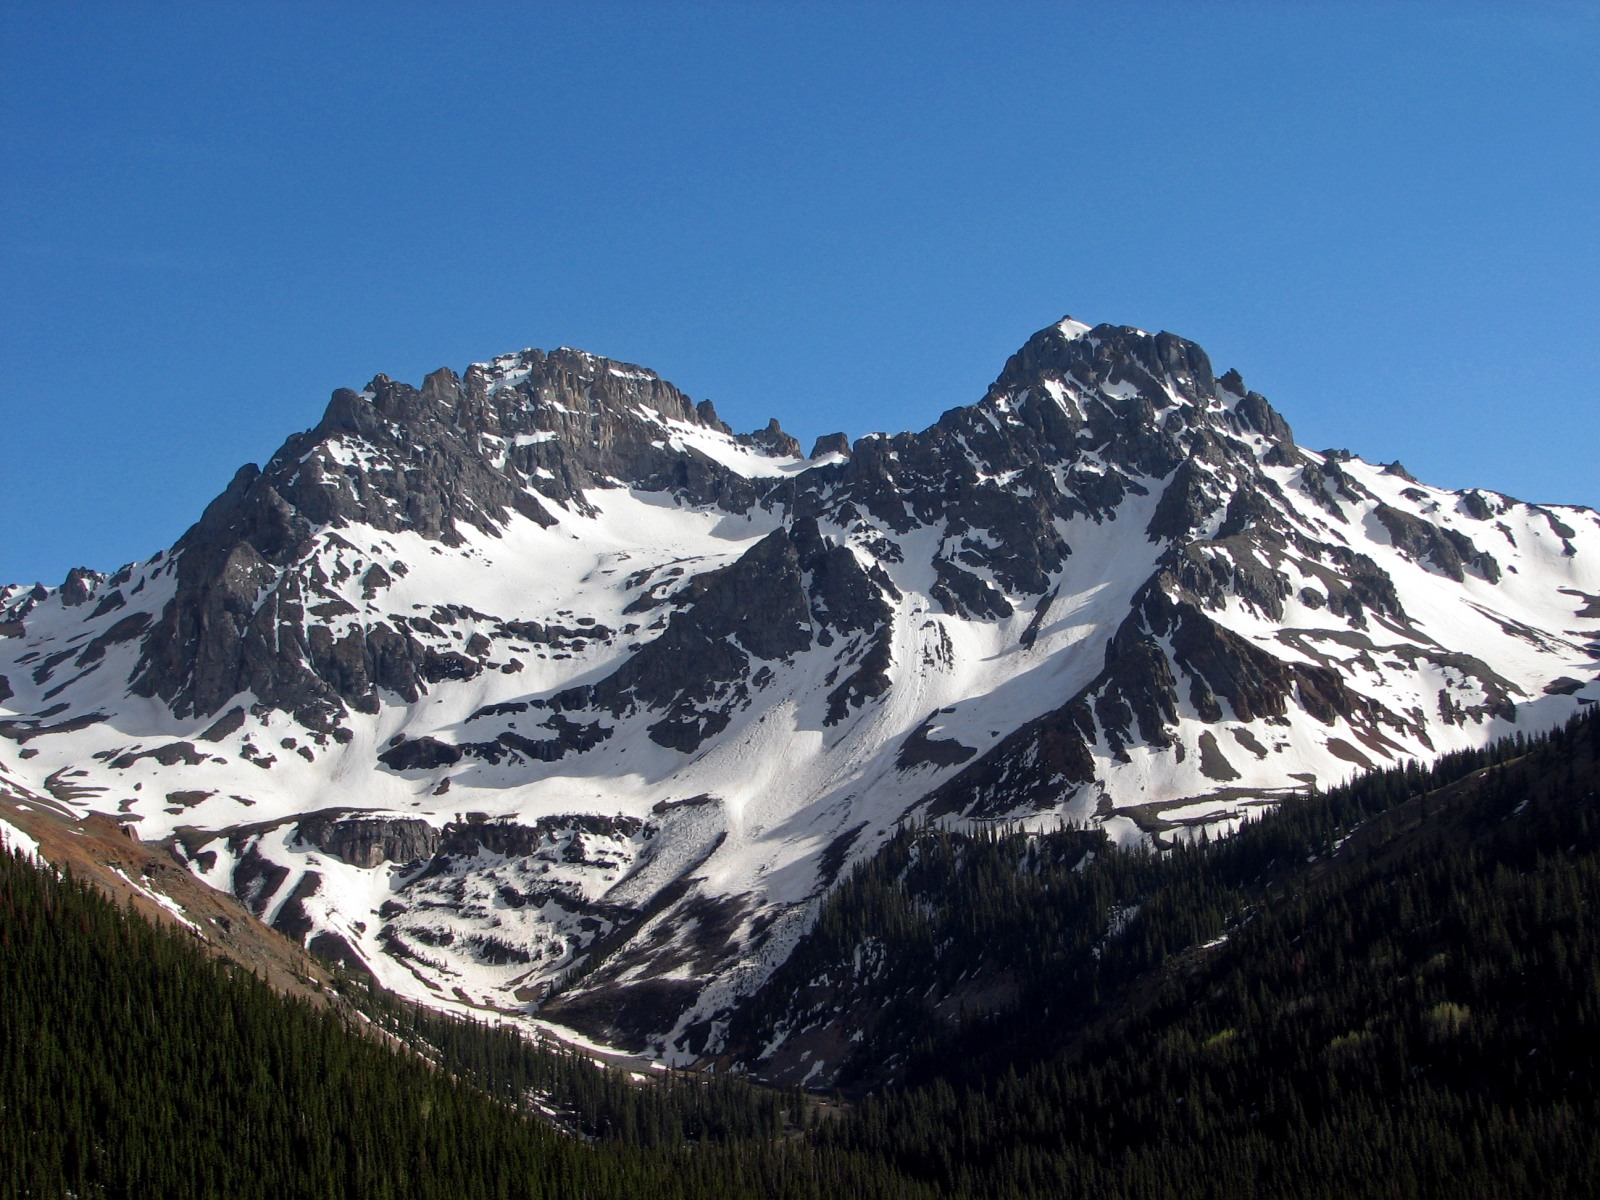 US Grant Peak as seen from the Ophir Pass Road over Memorial Day Weekend, 2006.